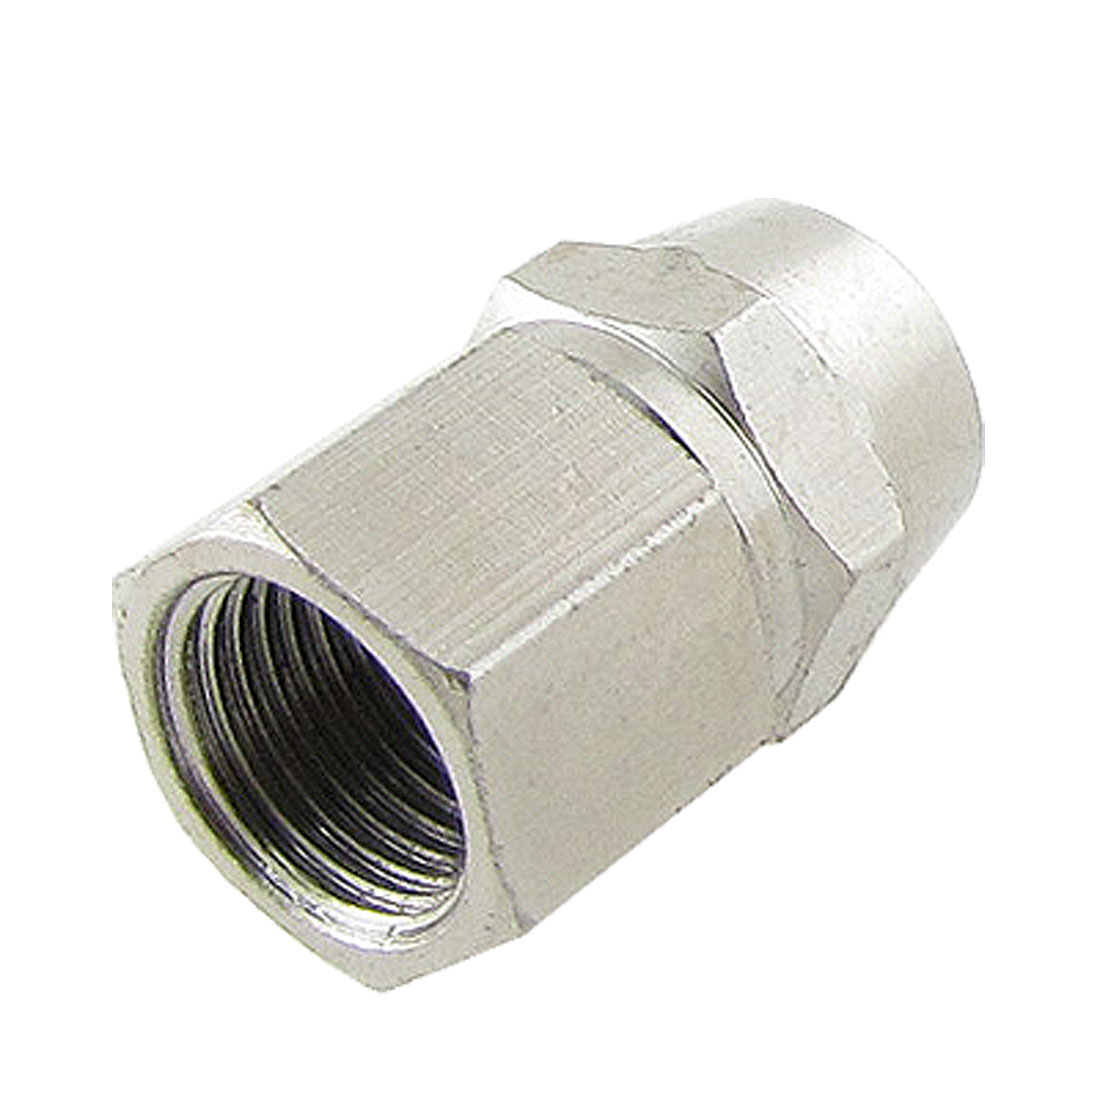 "5/32"" x 15/64"" Tube Pneumatic Air Quick Coupling Straight Adapter 1/3"" Female Thread"